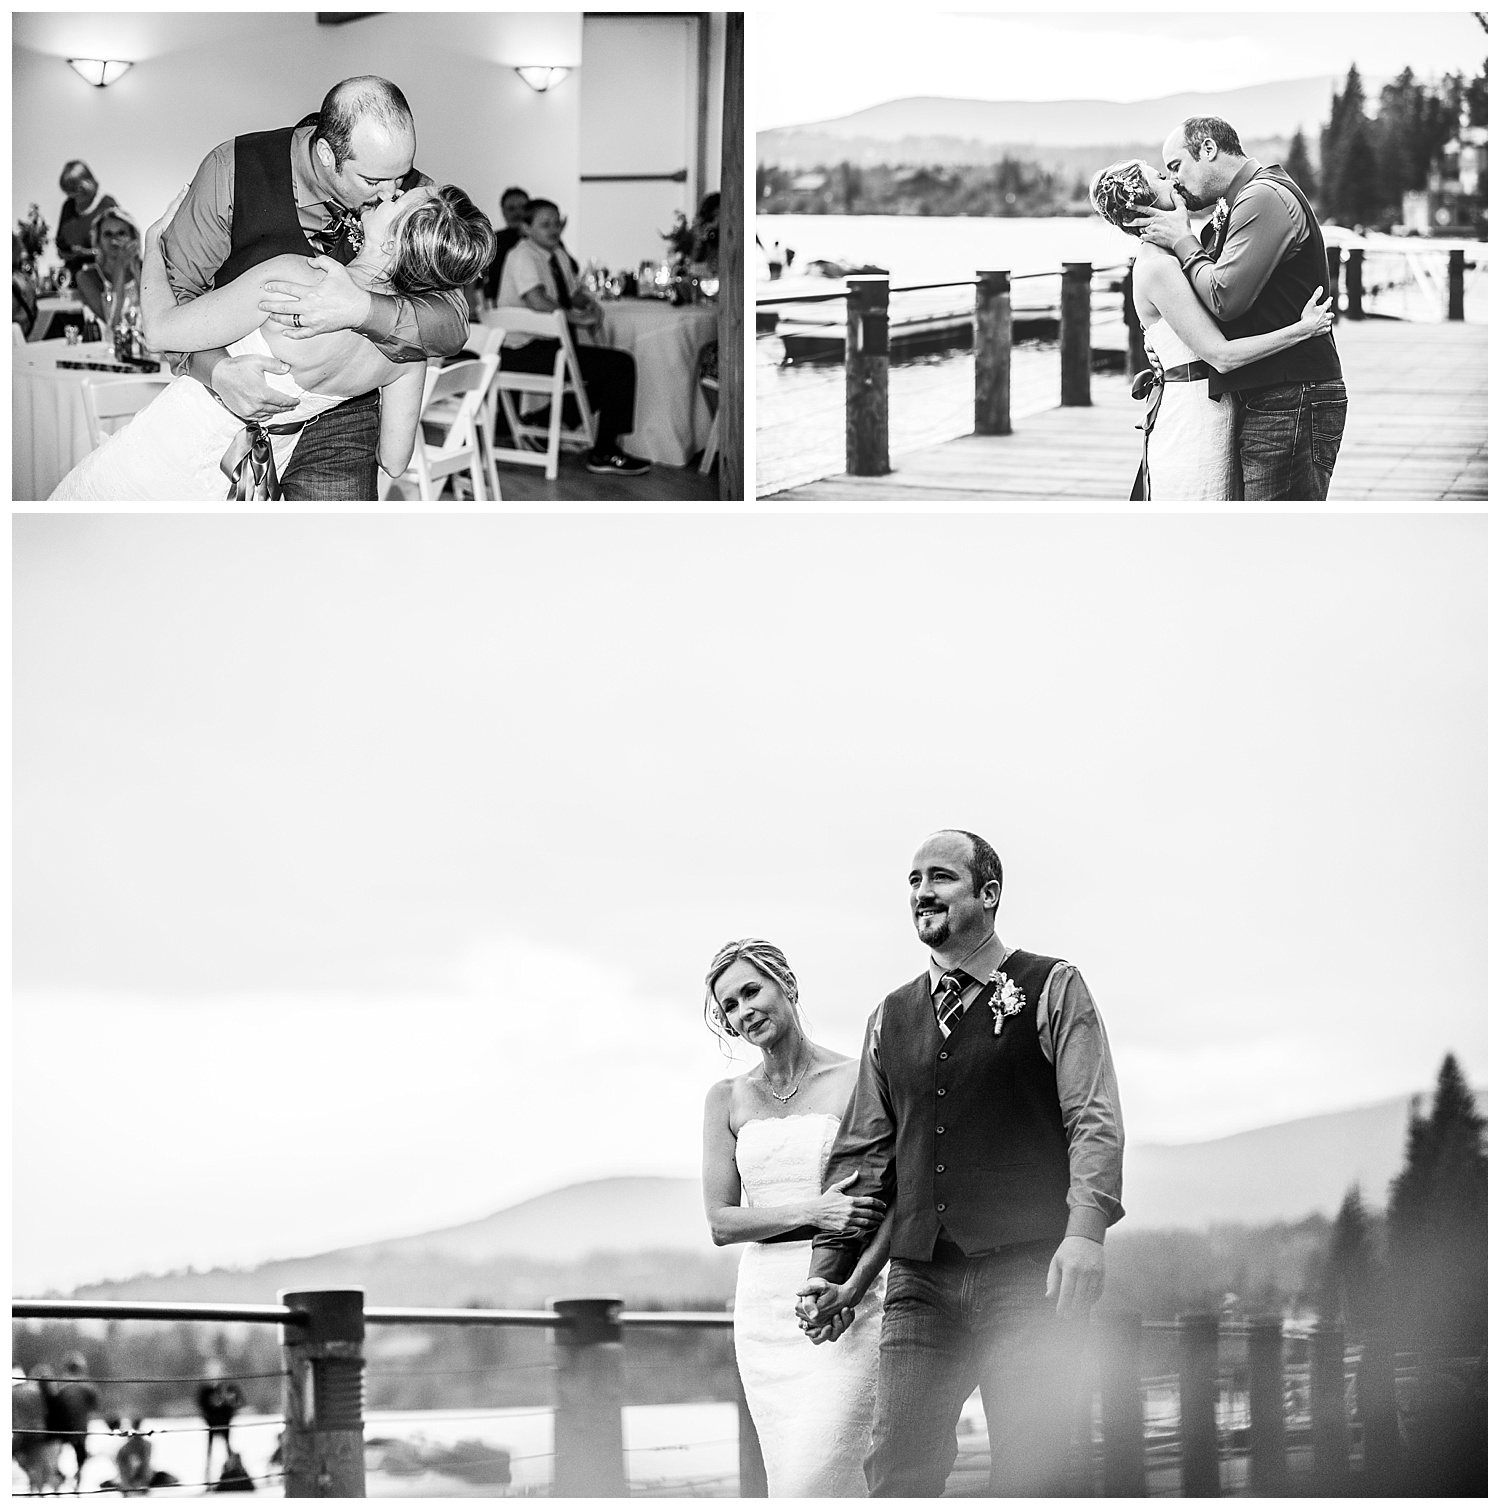 Western_Riviera_Wedding_Venue_Lake_Grandby_Colorado_Apollo_Fields_04.jpg